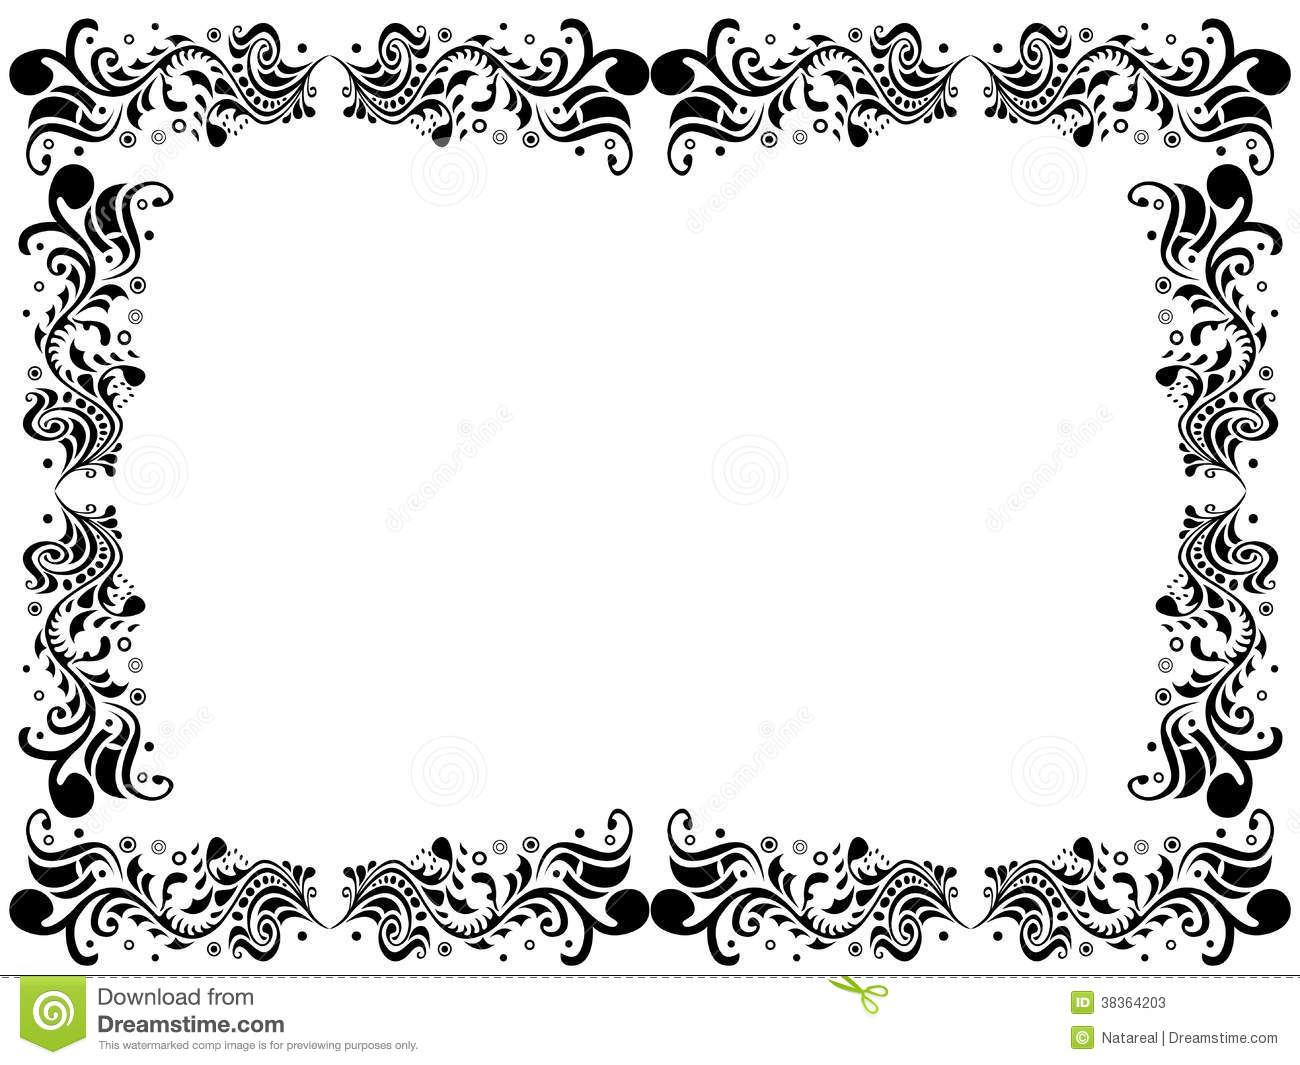 Black And White Floral Border Wallpapers The Art Mad Wallpapers 1300x1065